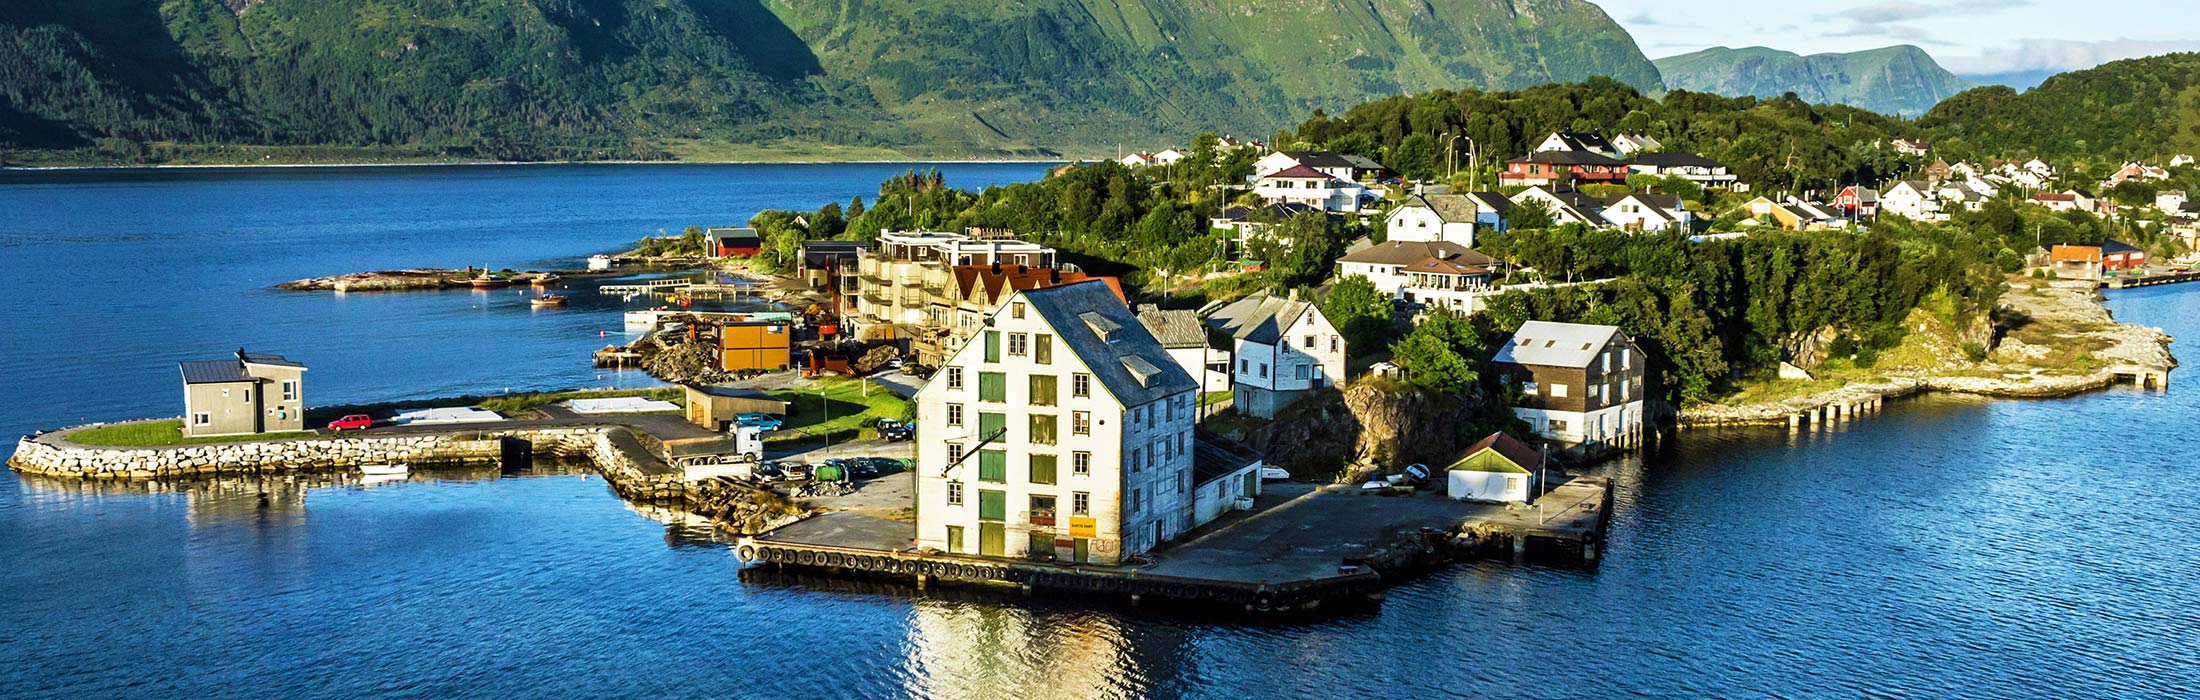 top yacht charter destinations northern europe main slider 2